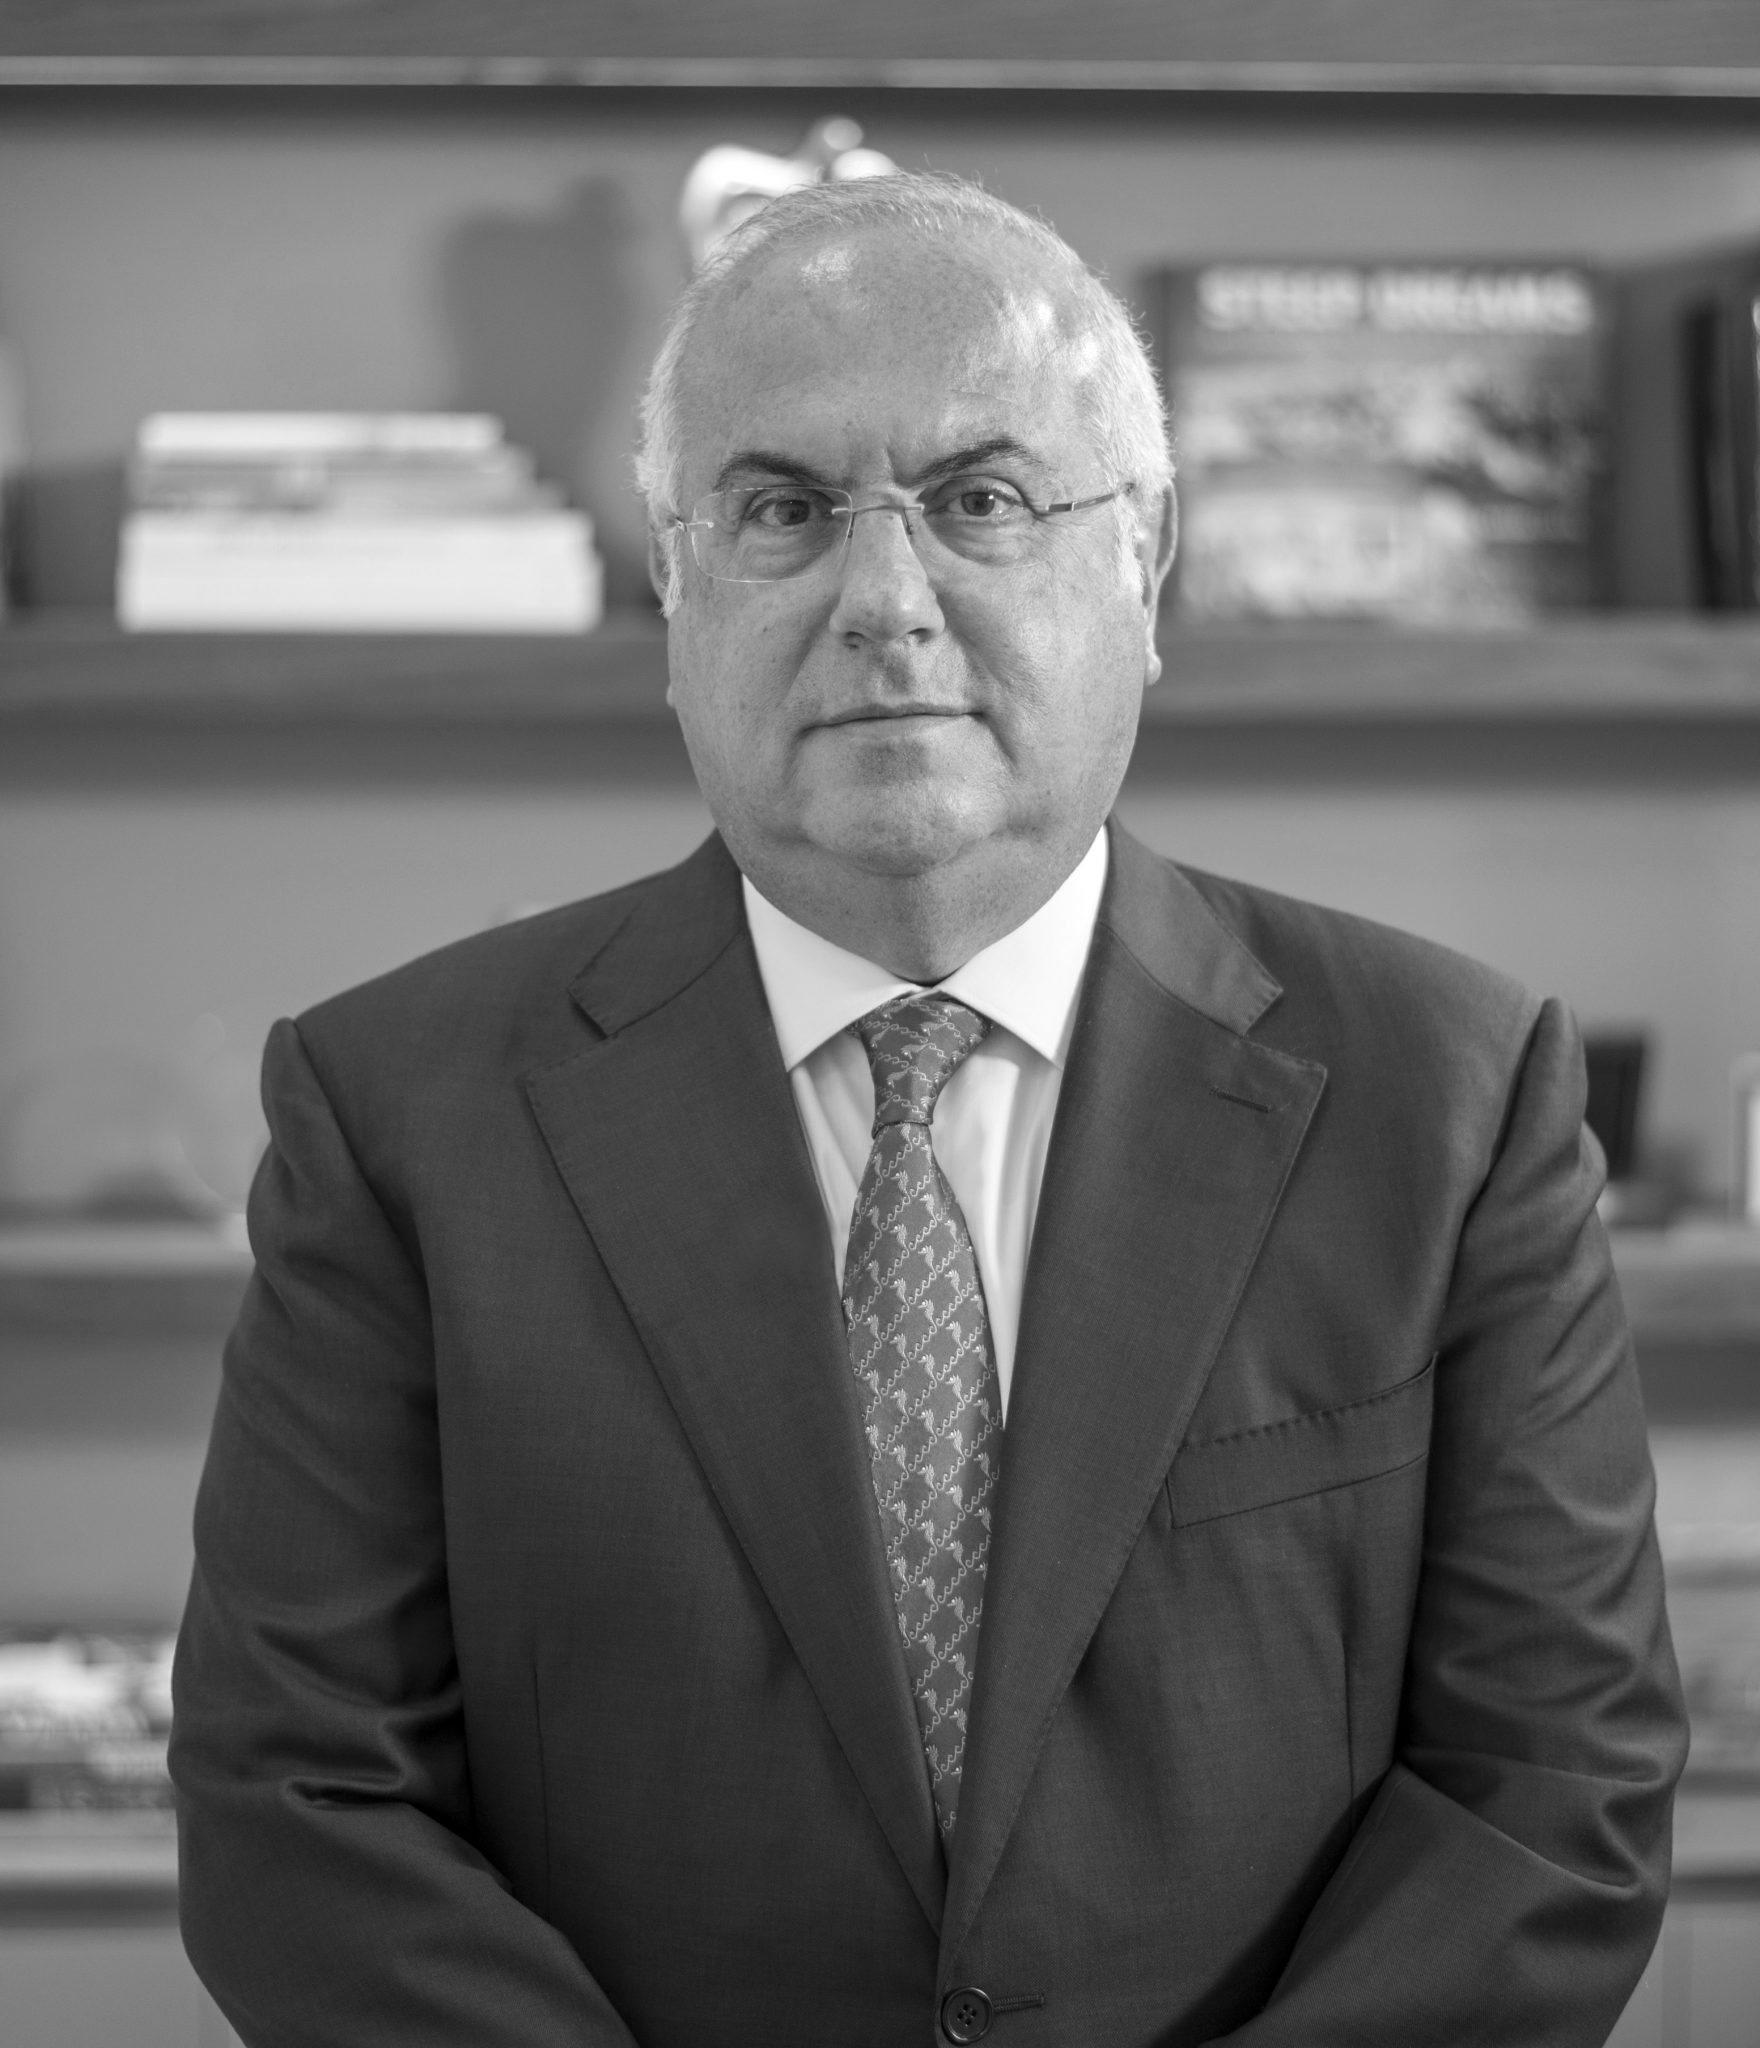 https://www.globalcompact-lebanon.com/wp-content/uploads/2019/02/Mr.-Khalil-Daoud-1-1.jpg